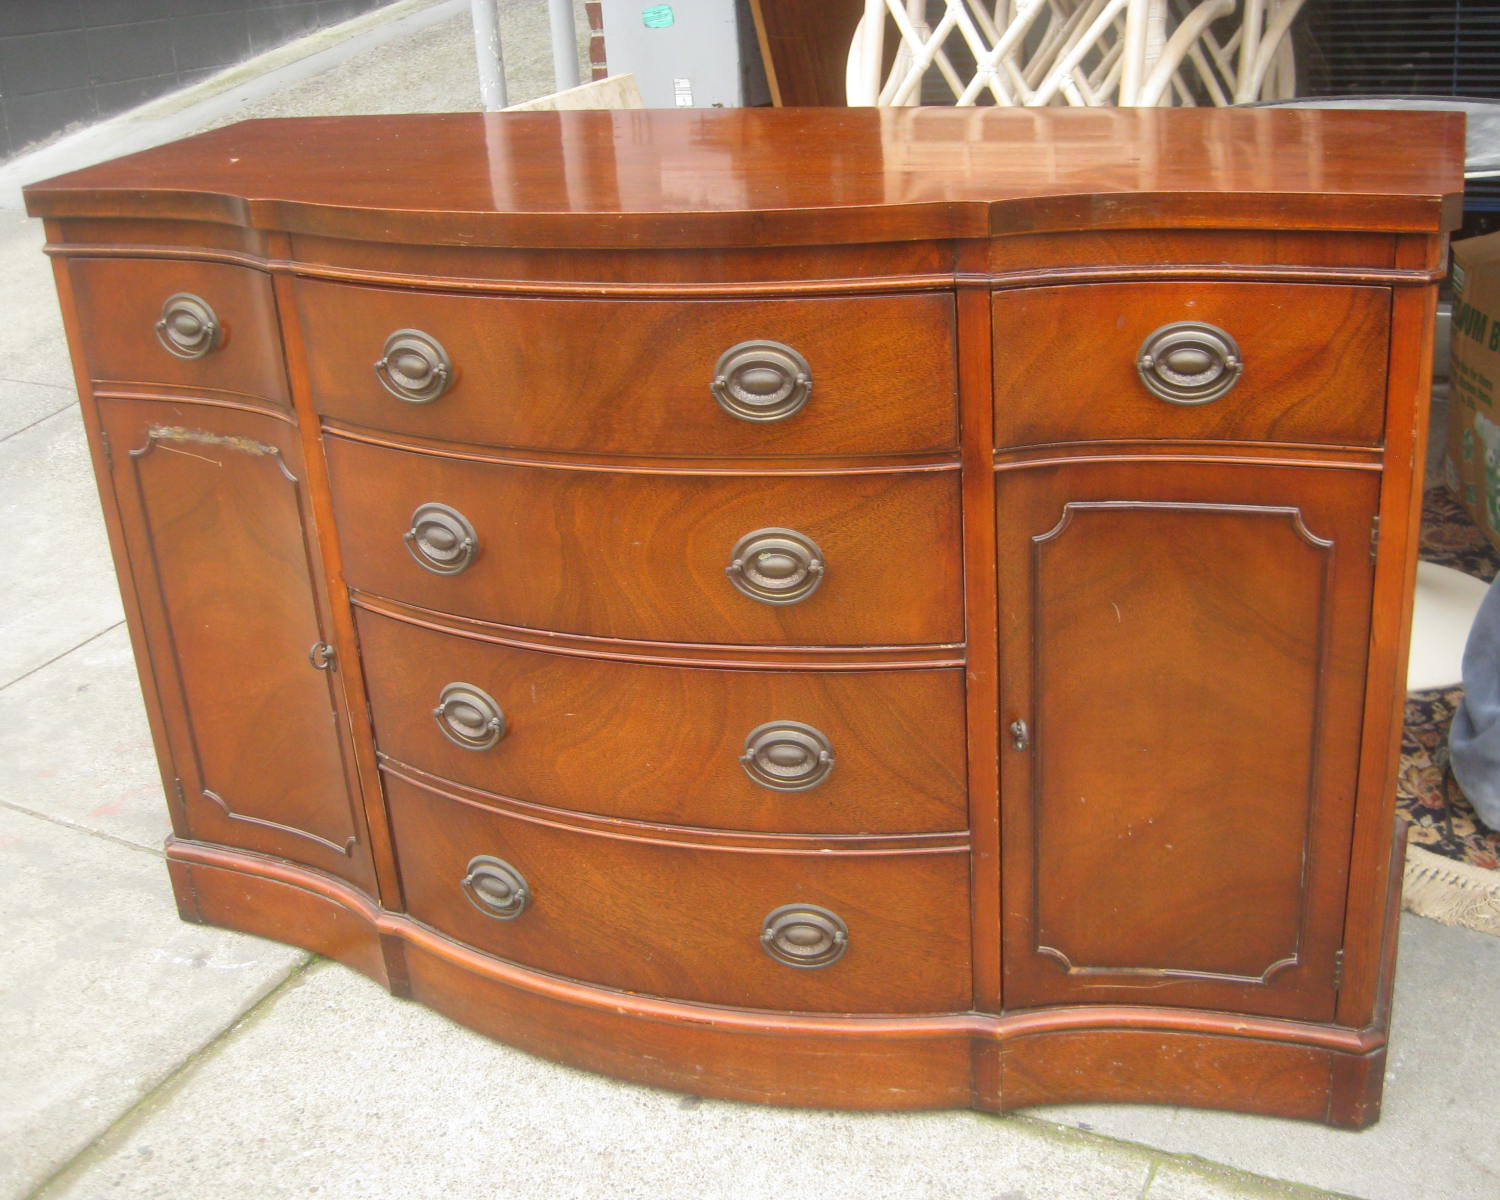 Uhuru Furniture Collectibles Sold Duncan Phyfe Sideboard 200